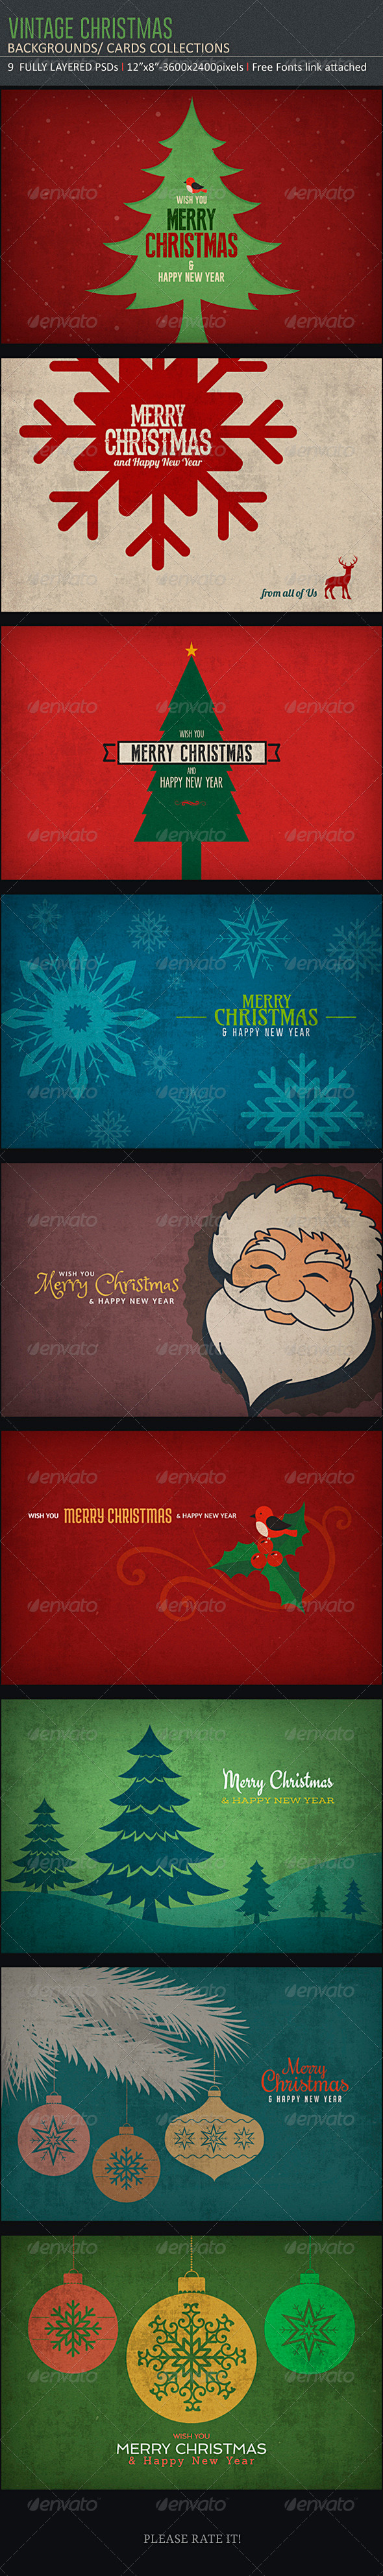 Vintage Christmas Backgrounds - Miscellaneous Backgrounds